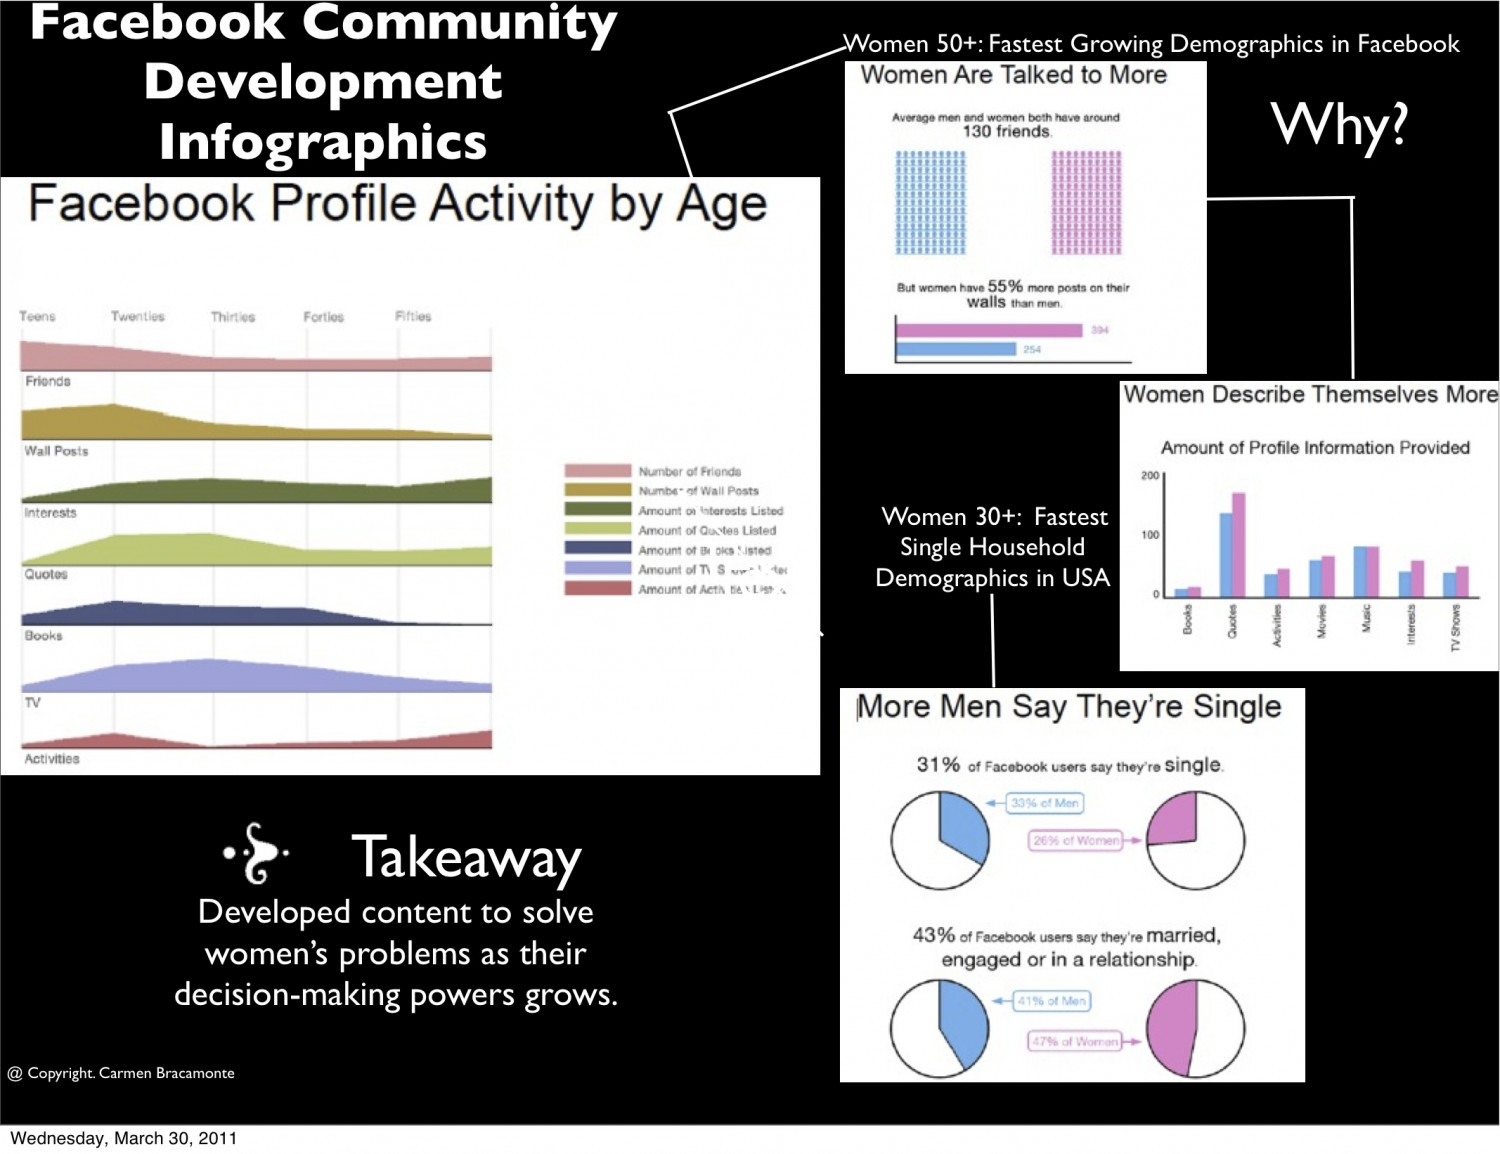 Facebook Community Development Infographic  Infographic